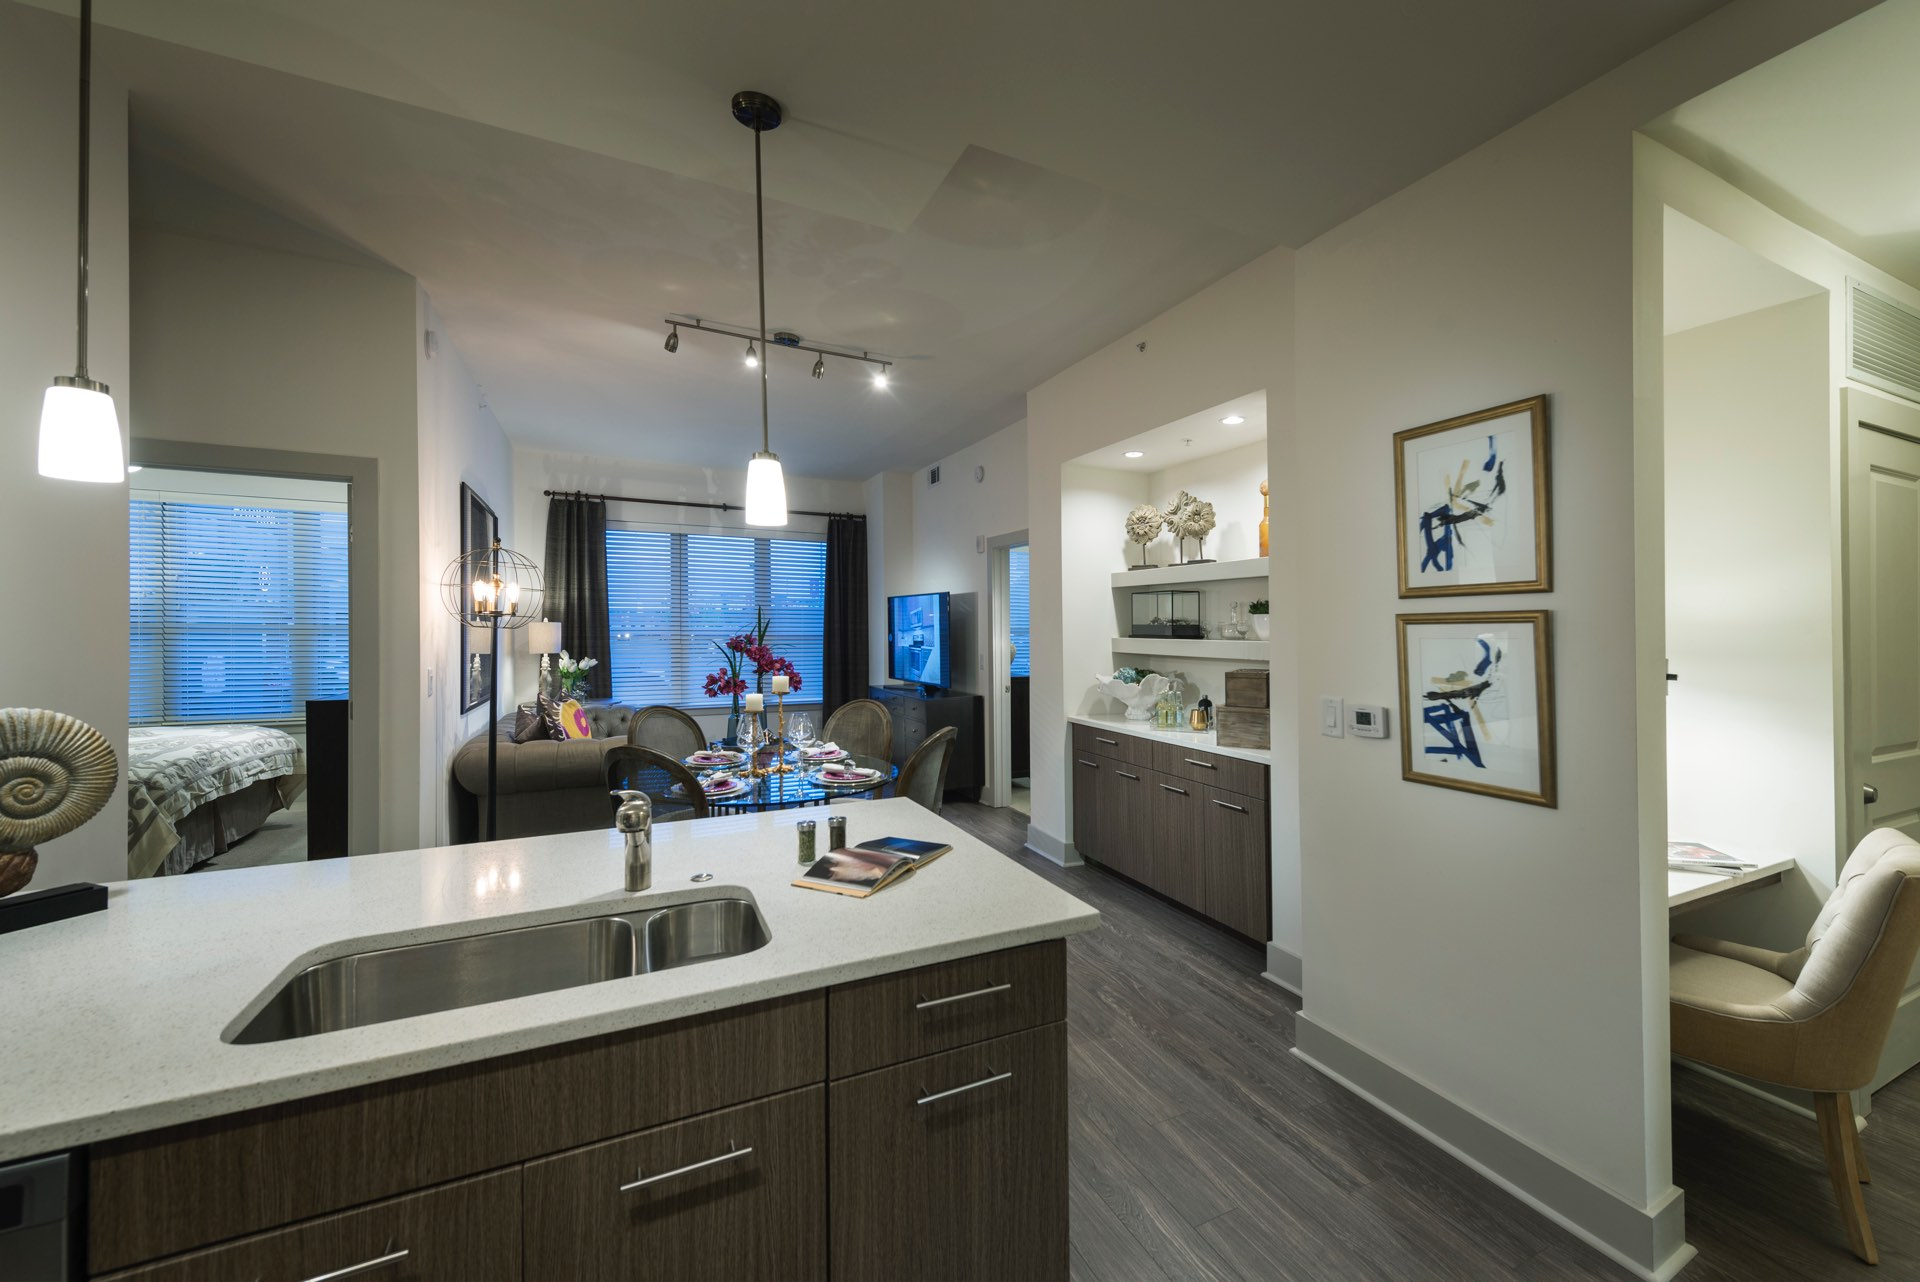 Gourmet chef's kitchen with stainless steel appliances